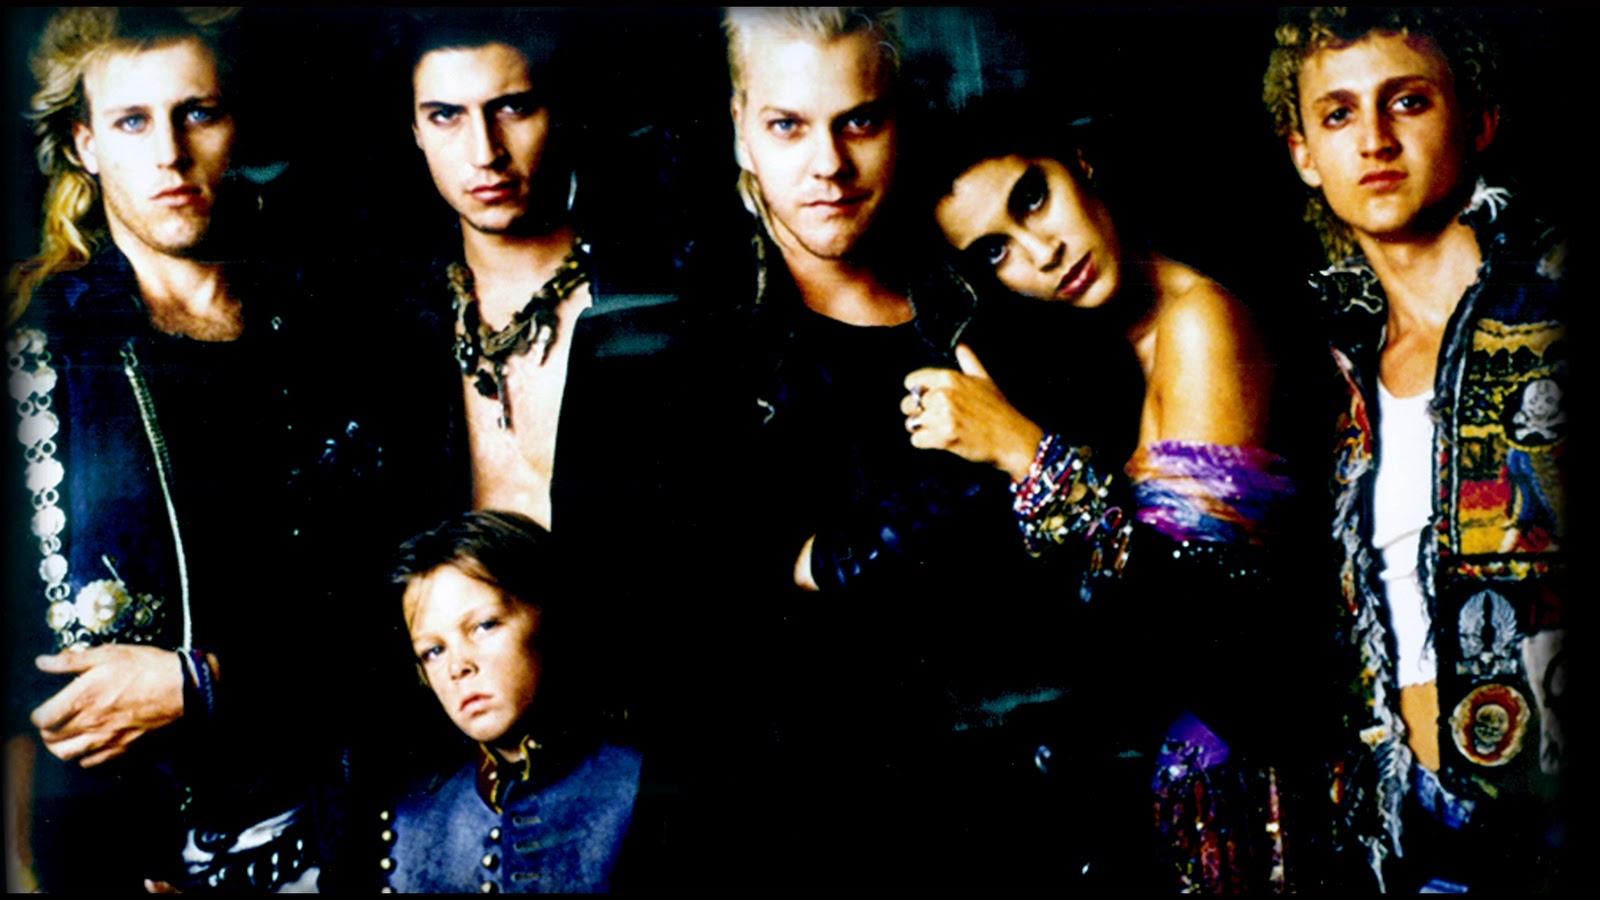 13. The Lost Boys - Thomas Newman/Various